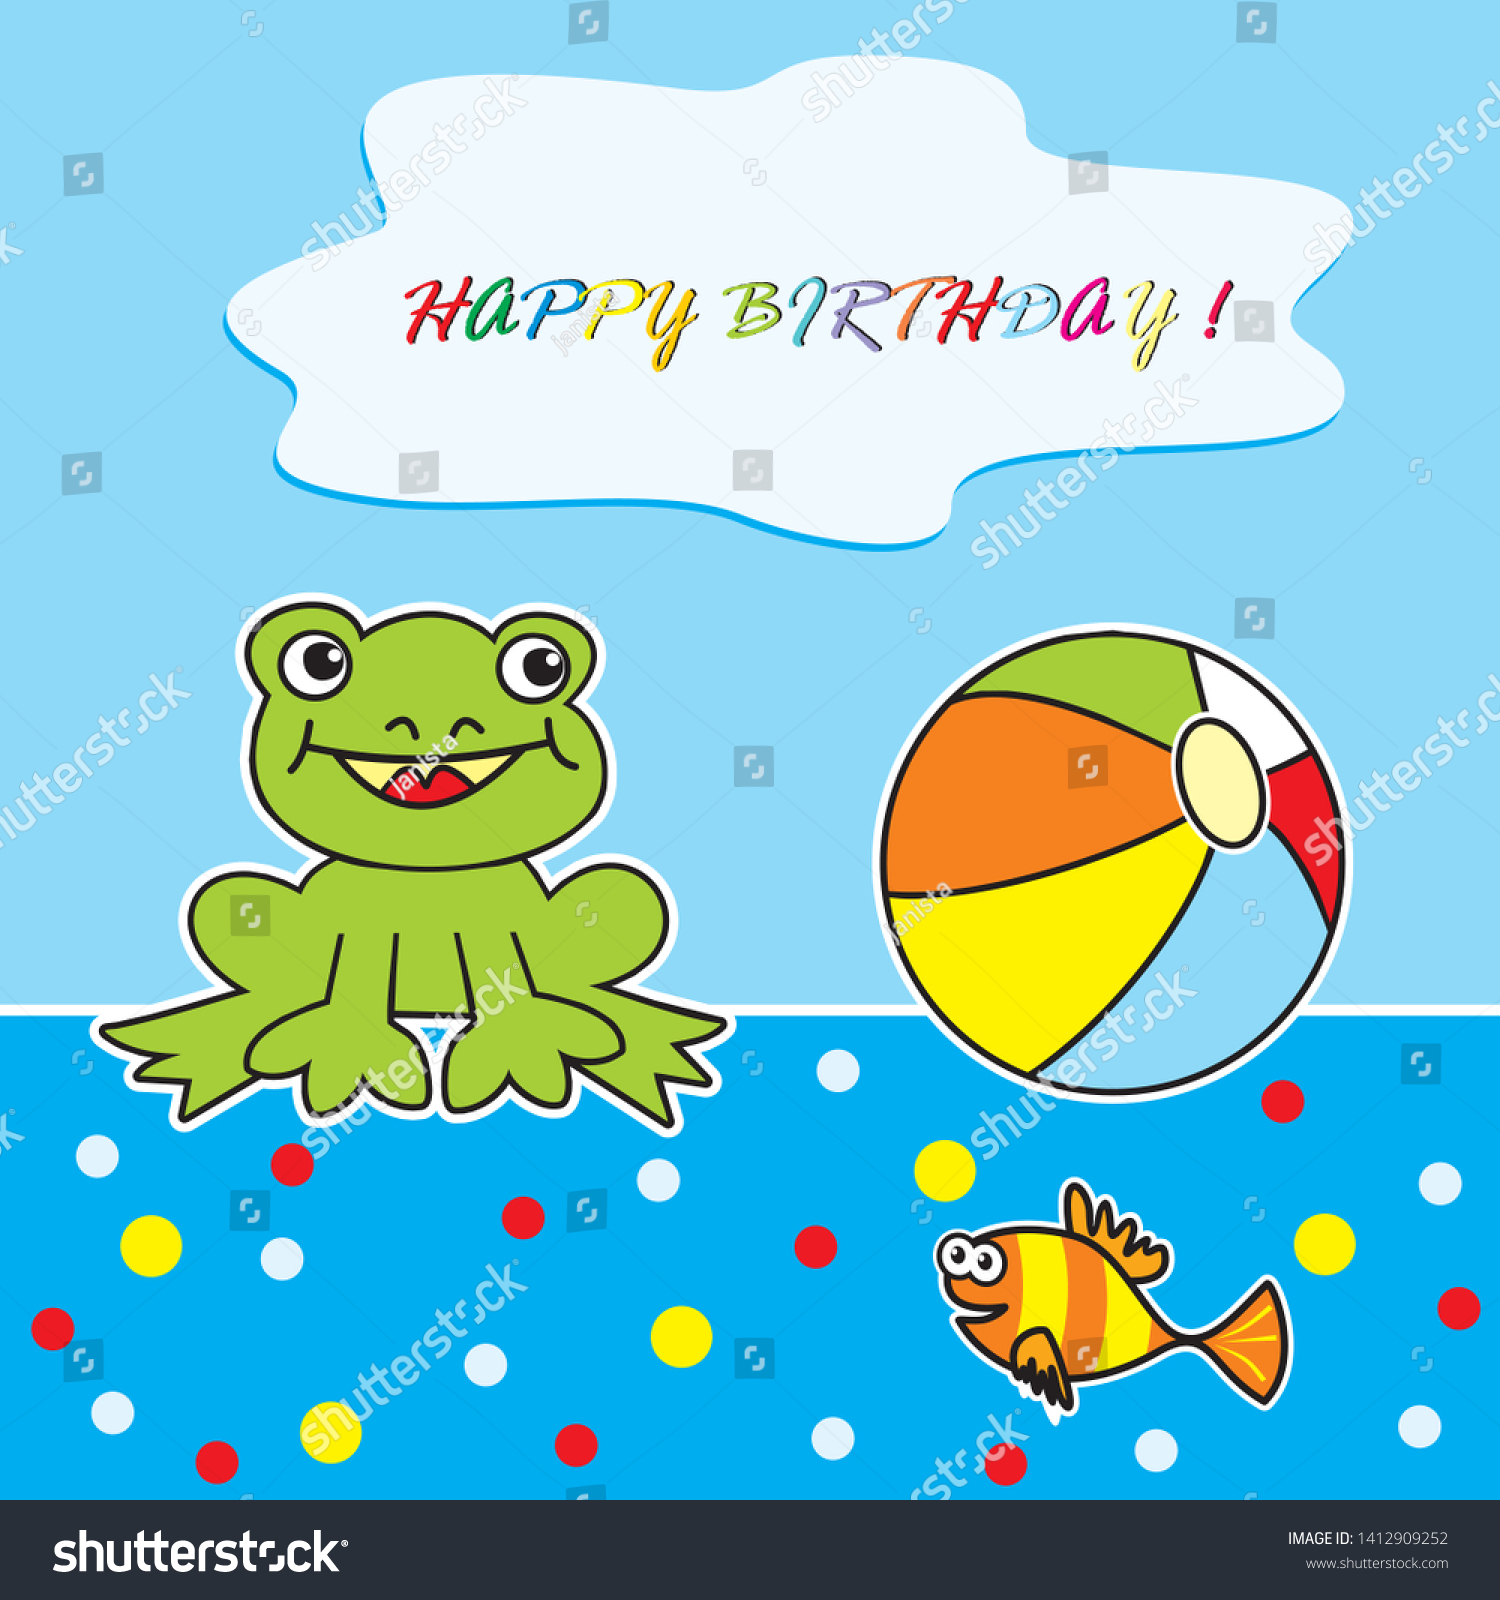 Happy Birthday Frog Ball Postcard Vector Stock Vector Royalty Free 1412909252